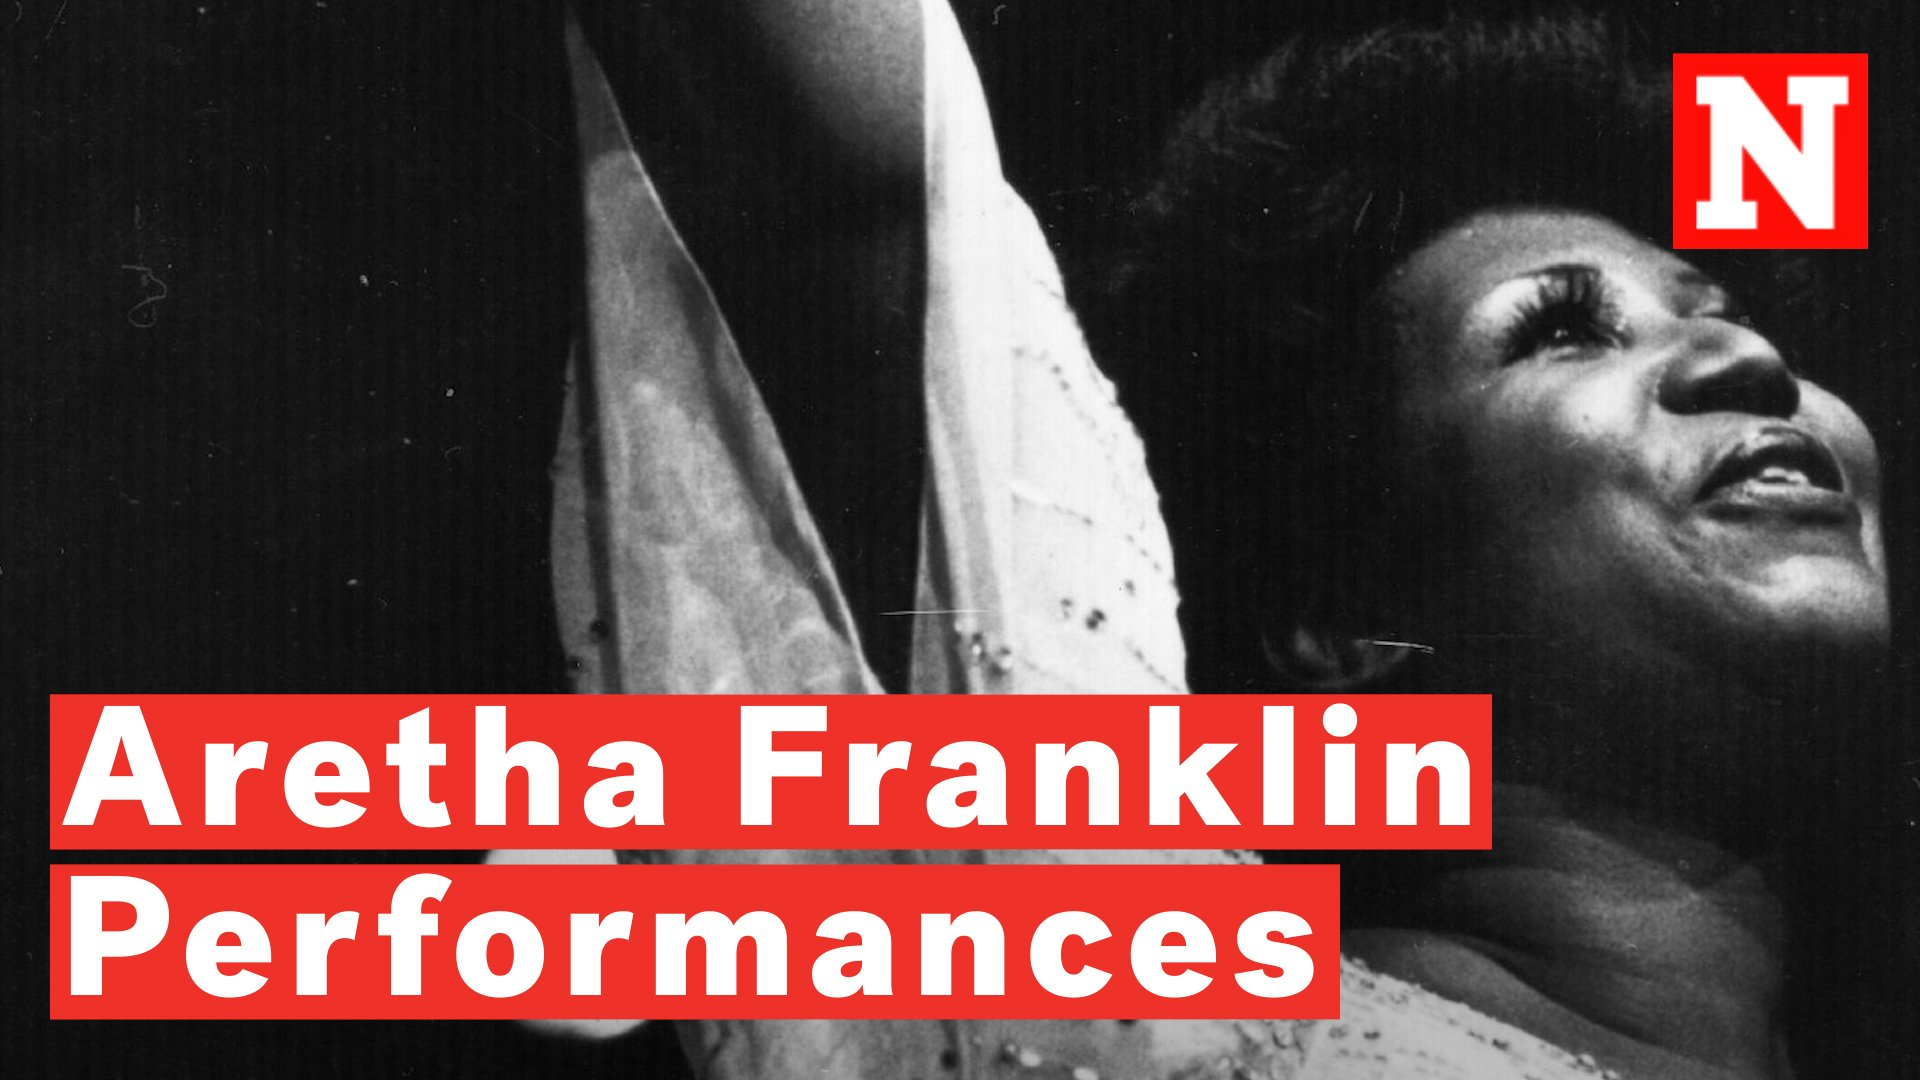 Here are some of Aretha Franklin's best live performances throughout her legendary career https://t.co/CzkNK8MWvJ https://t.co/sh0deEc3K2